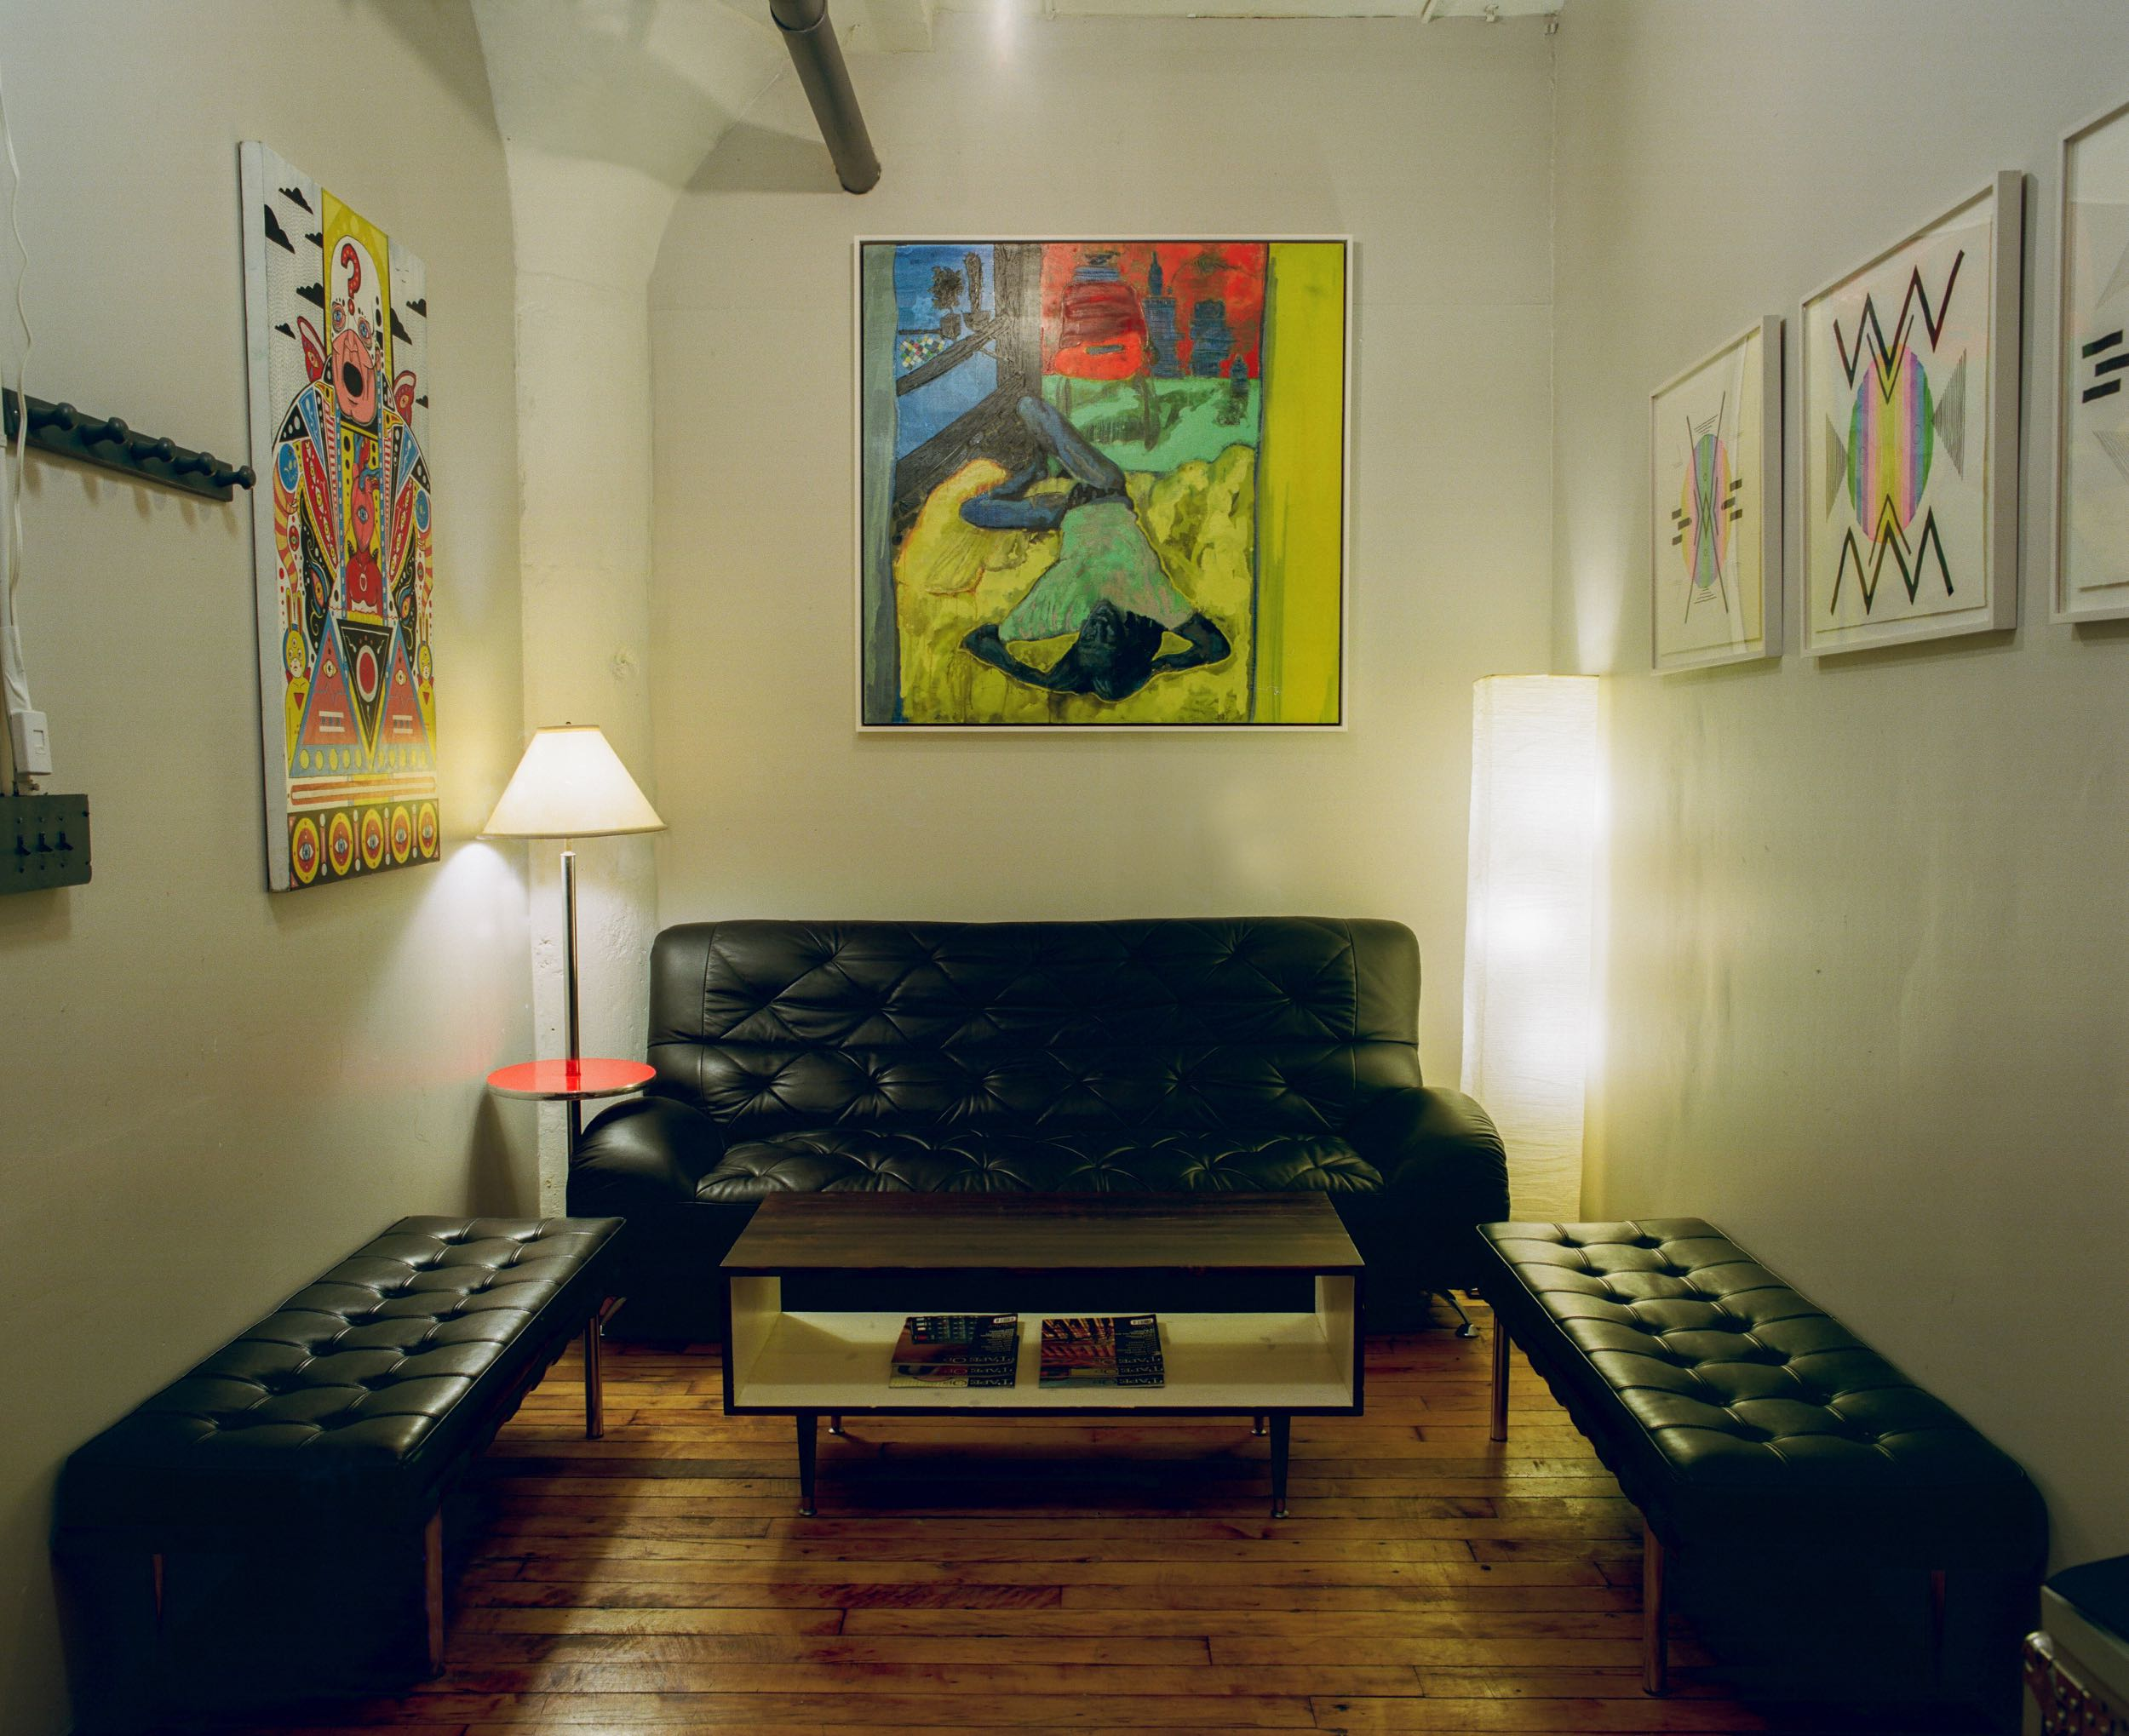 Lounge and Reception Area of Look to Listen Studios leather couches and artwork by Drjuchin and Castator